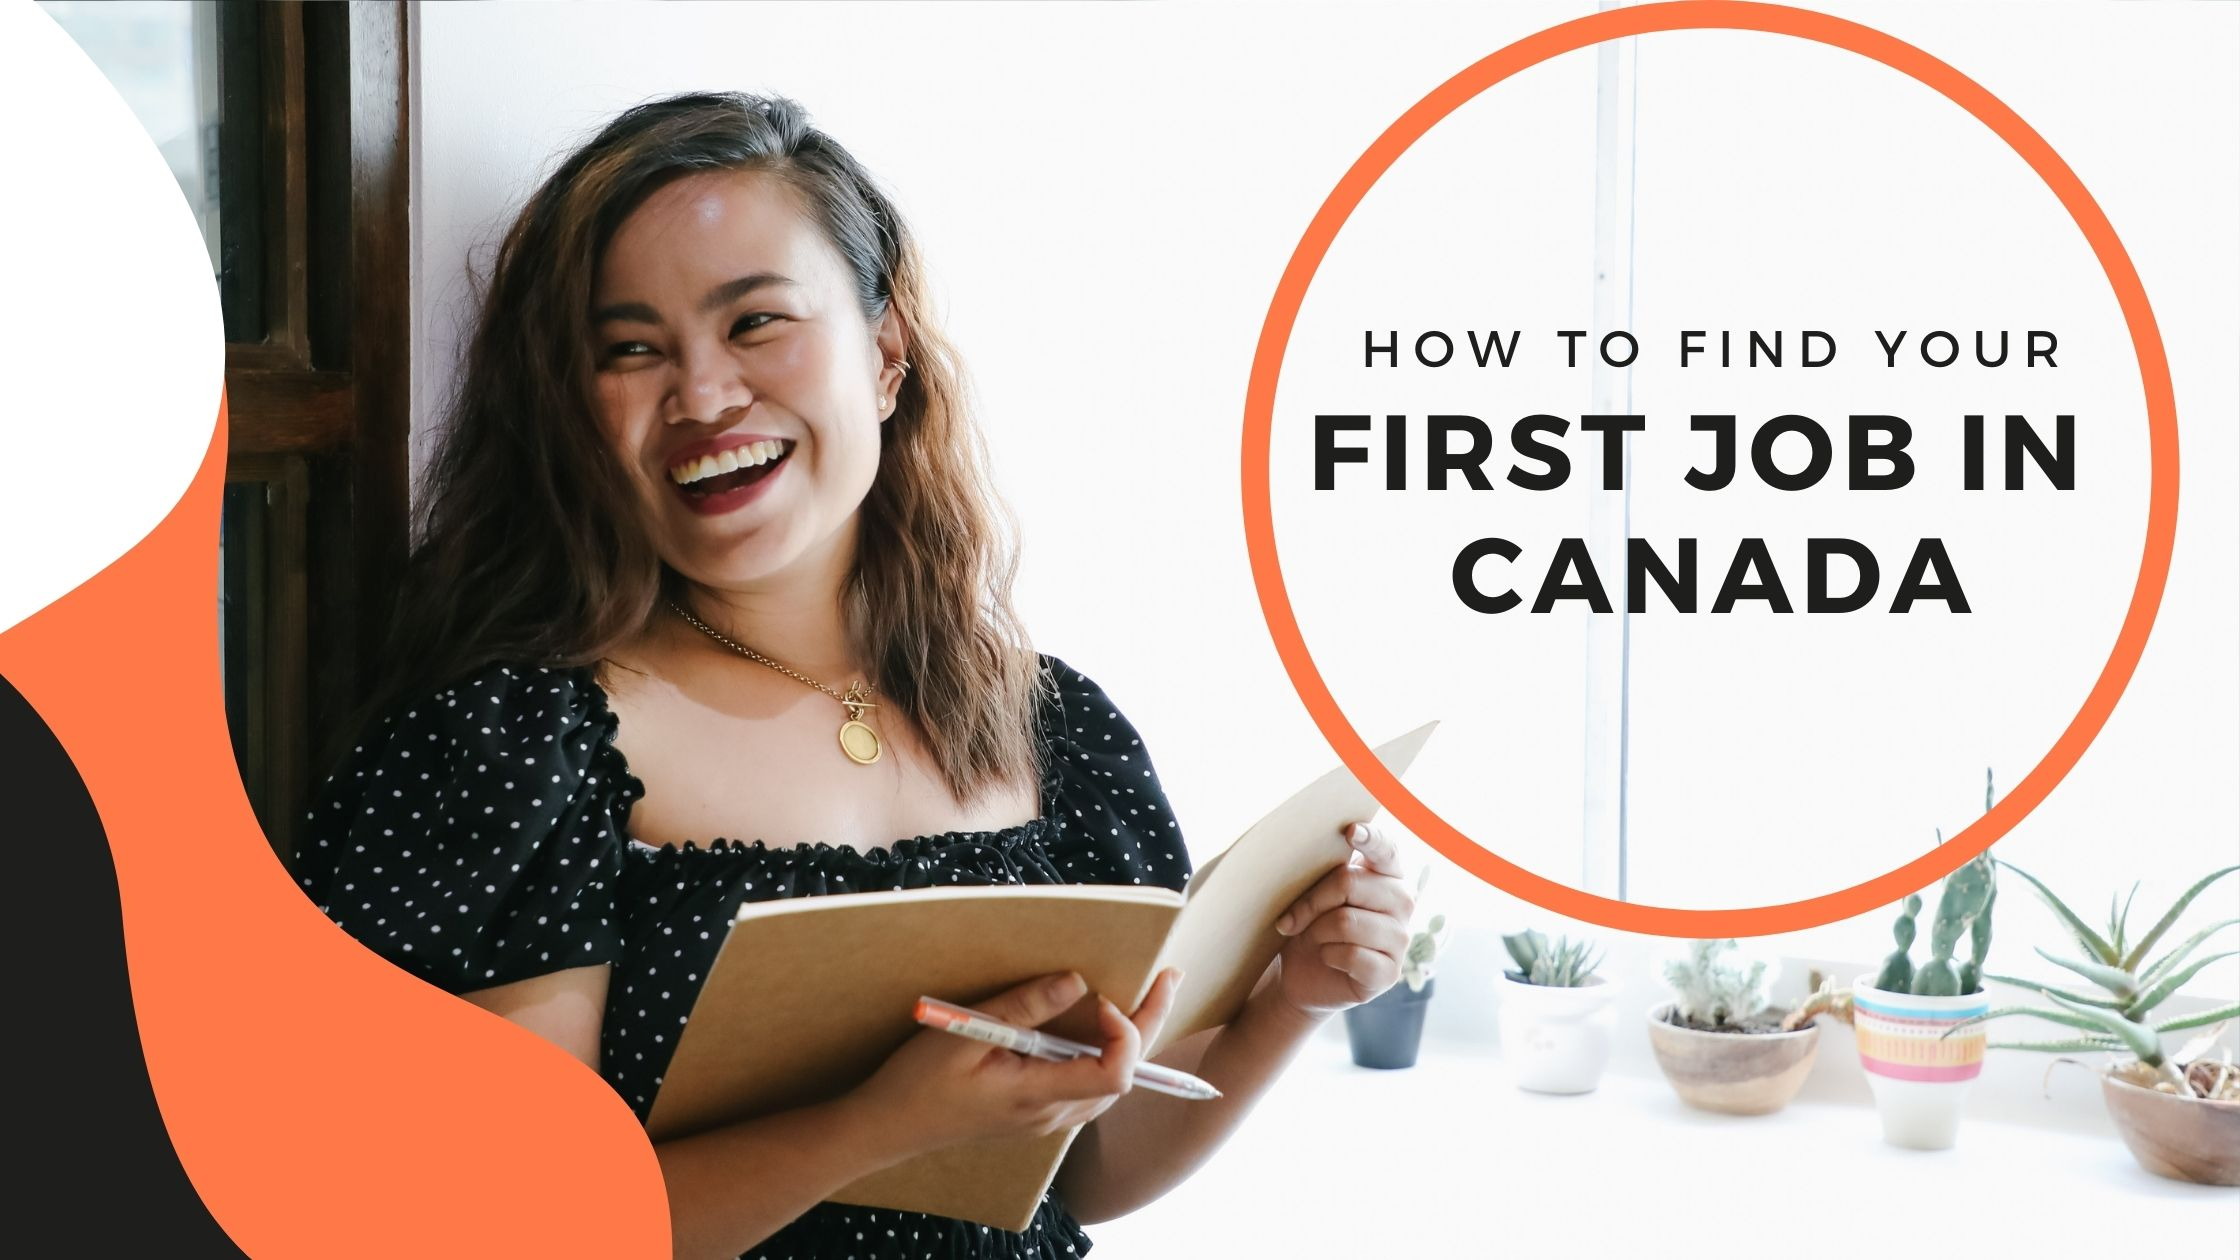 How to find your first job in Canada for new immigrants?